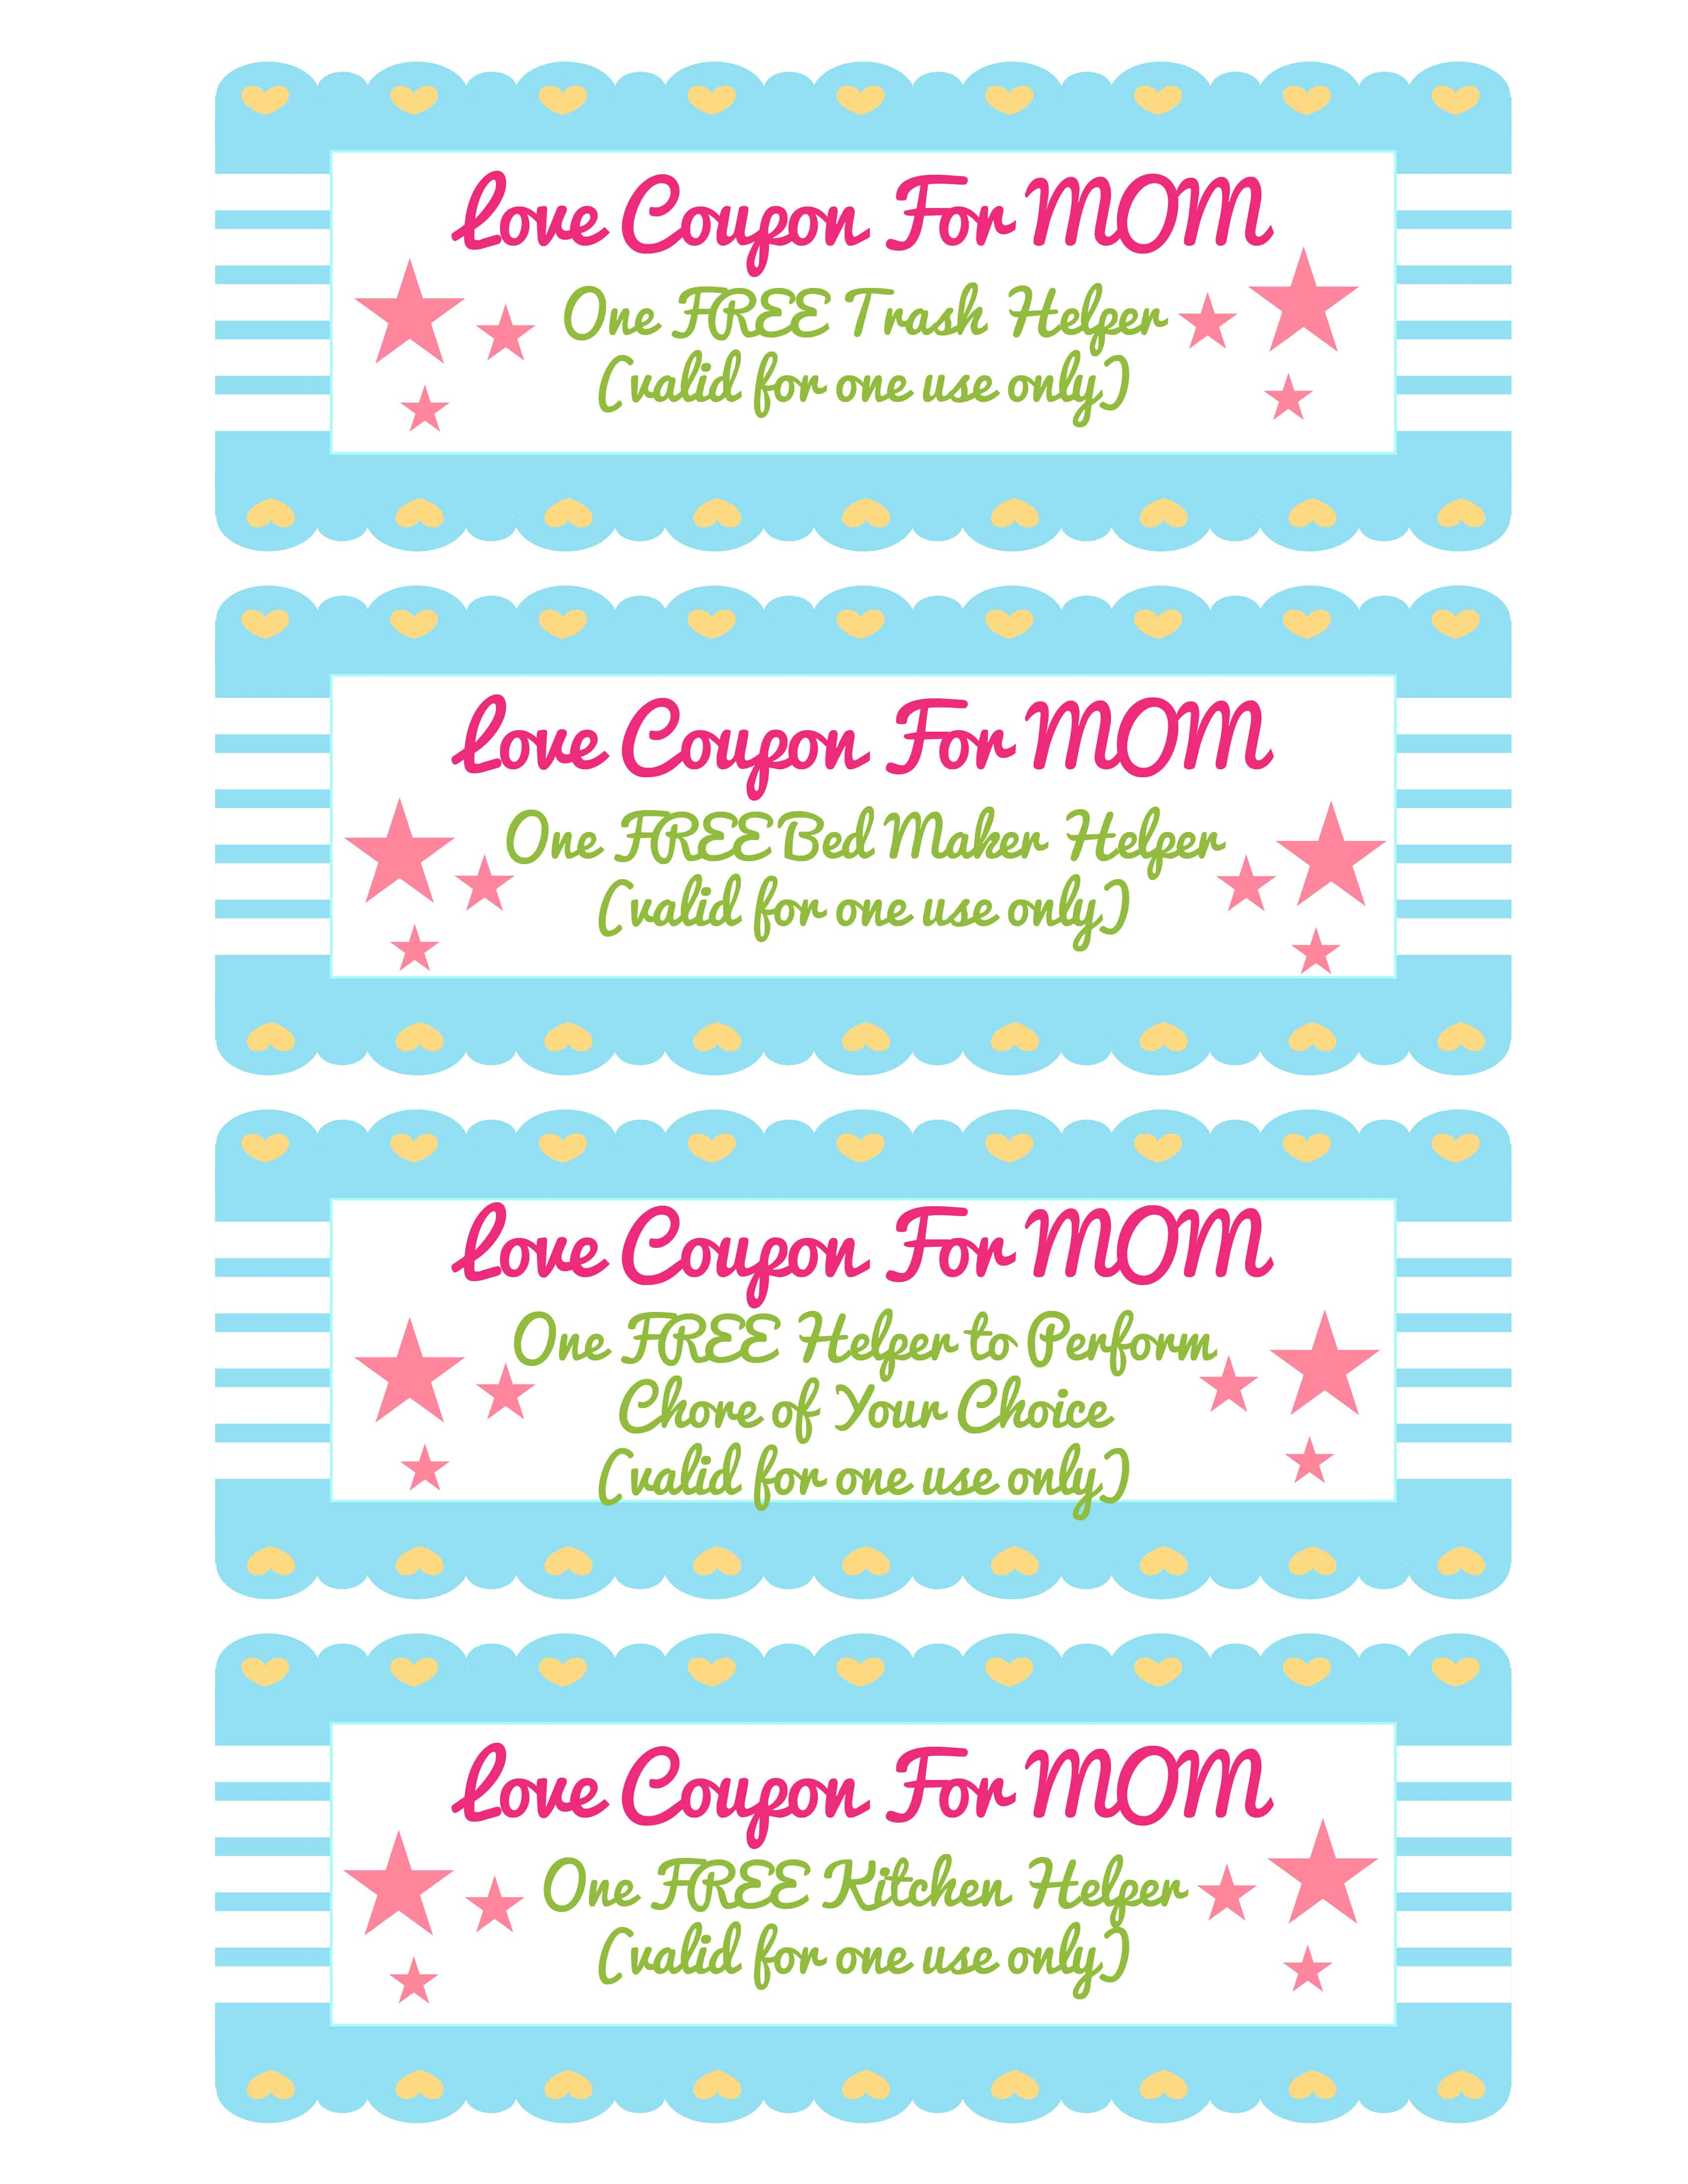 This homemade coupon book ideas for mom template is perfect when mom could use a little help around the house like with the trash or beds.